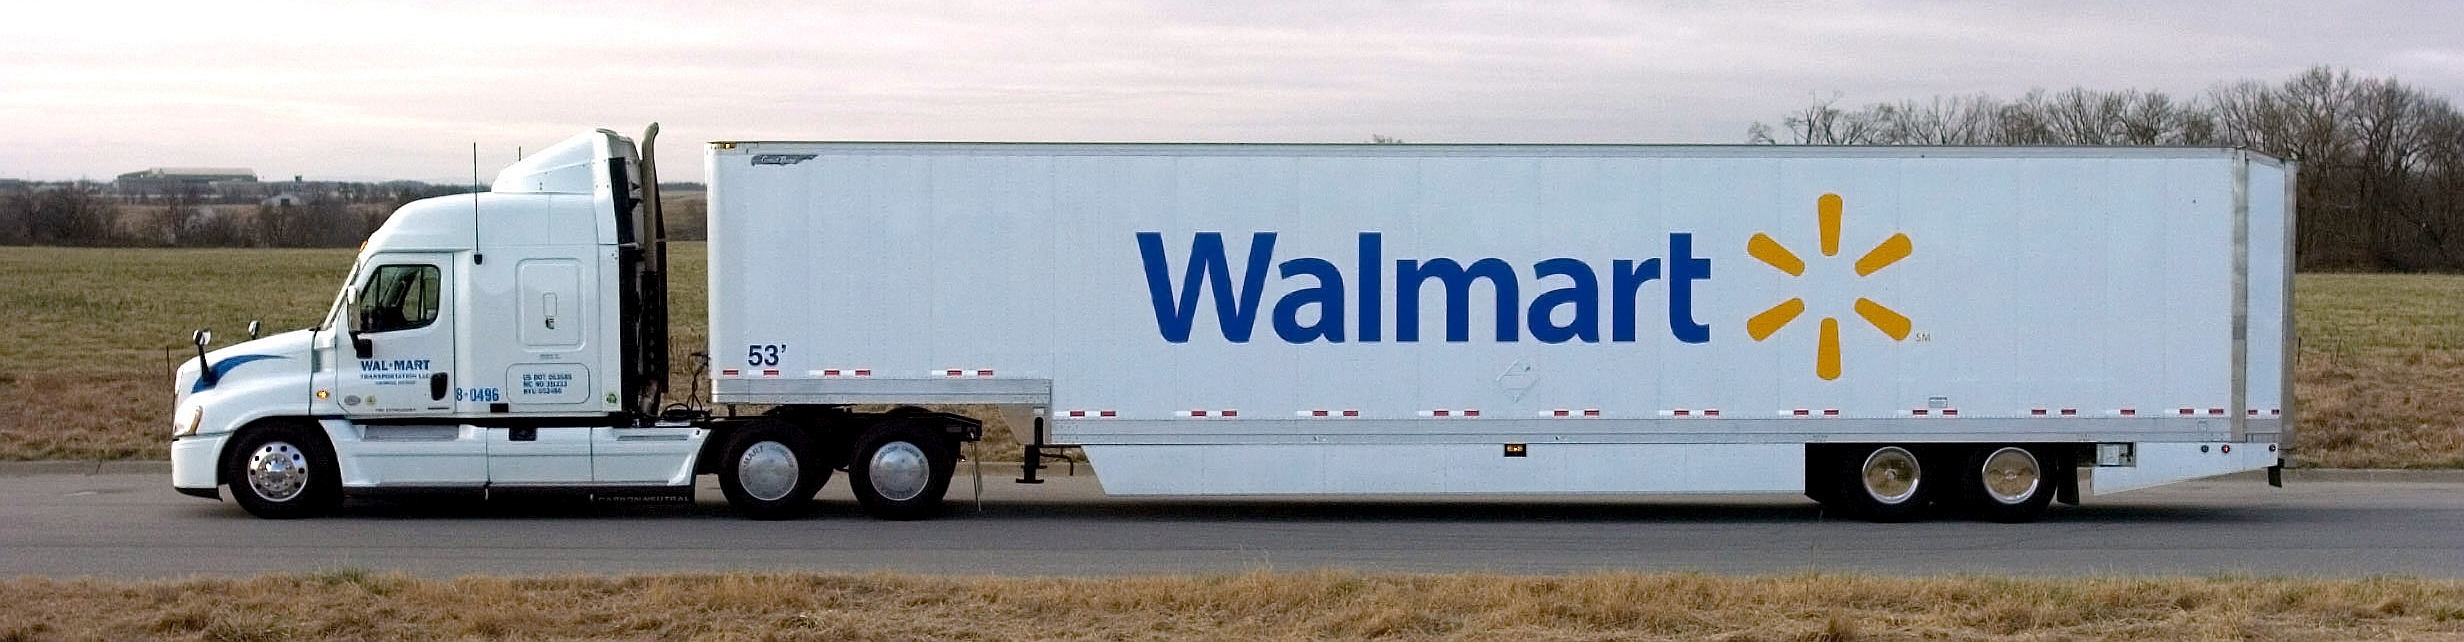 Walmart%u2019s_Grease_Fuel_Truck - Creative Commons by Walmart from Bentonville, USA